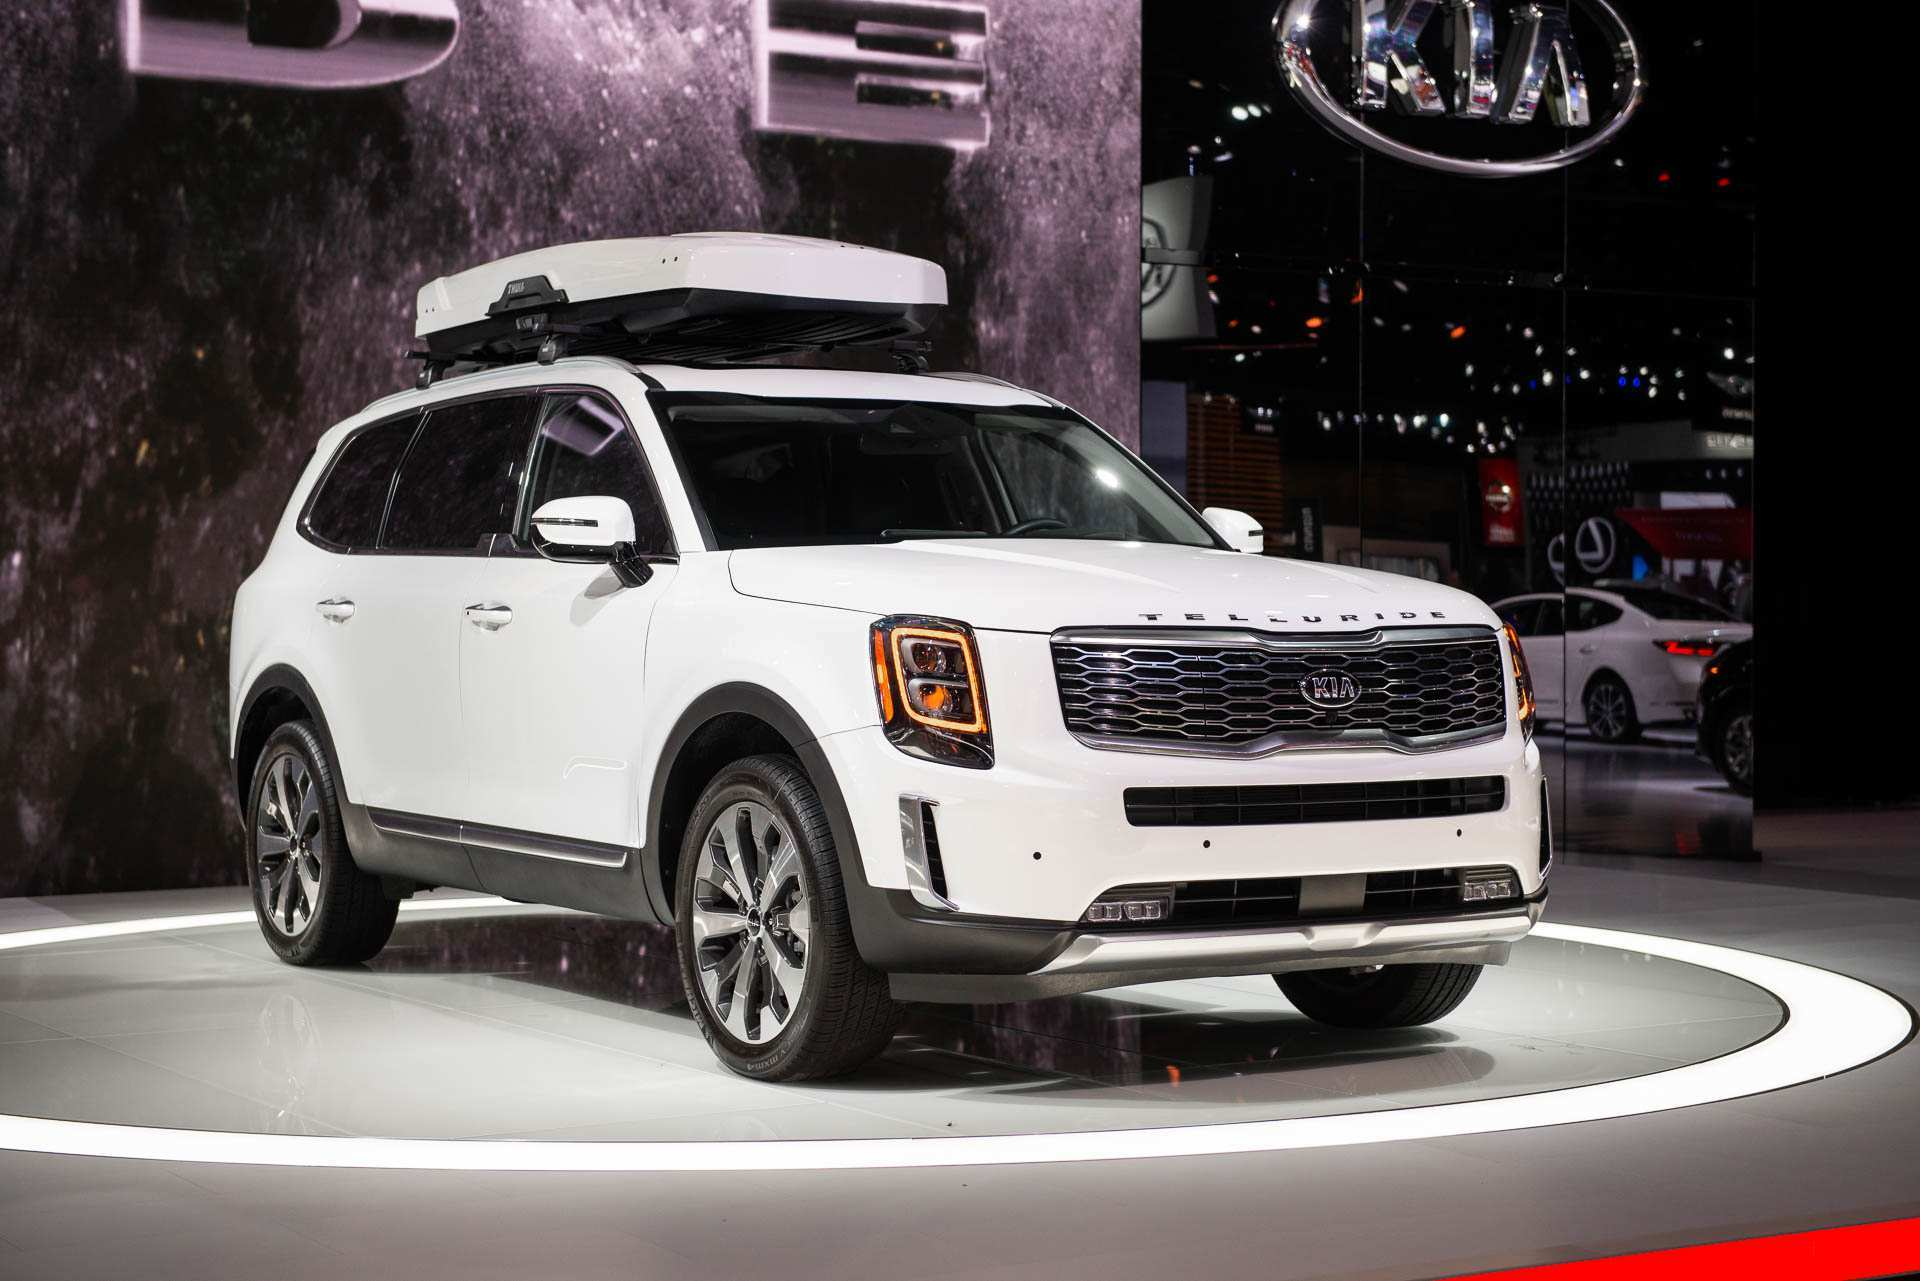 46 All New How Much Is The 2020 Kia Telluride History with How Much Is The 2020 Kia Telluride